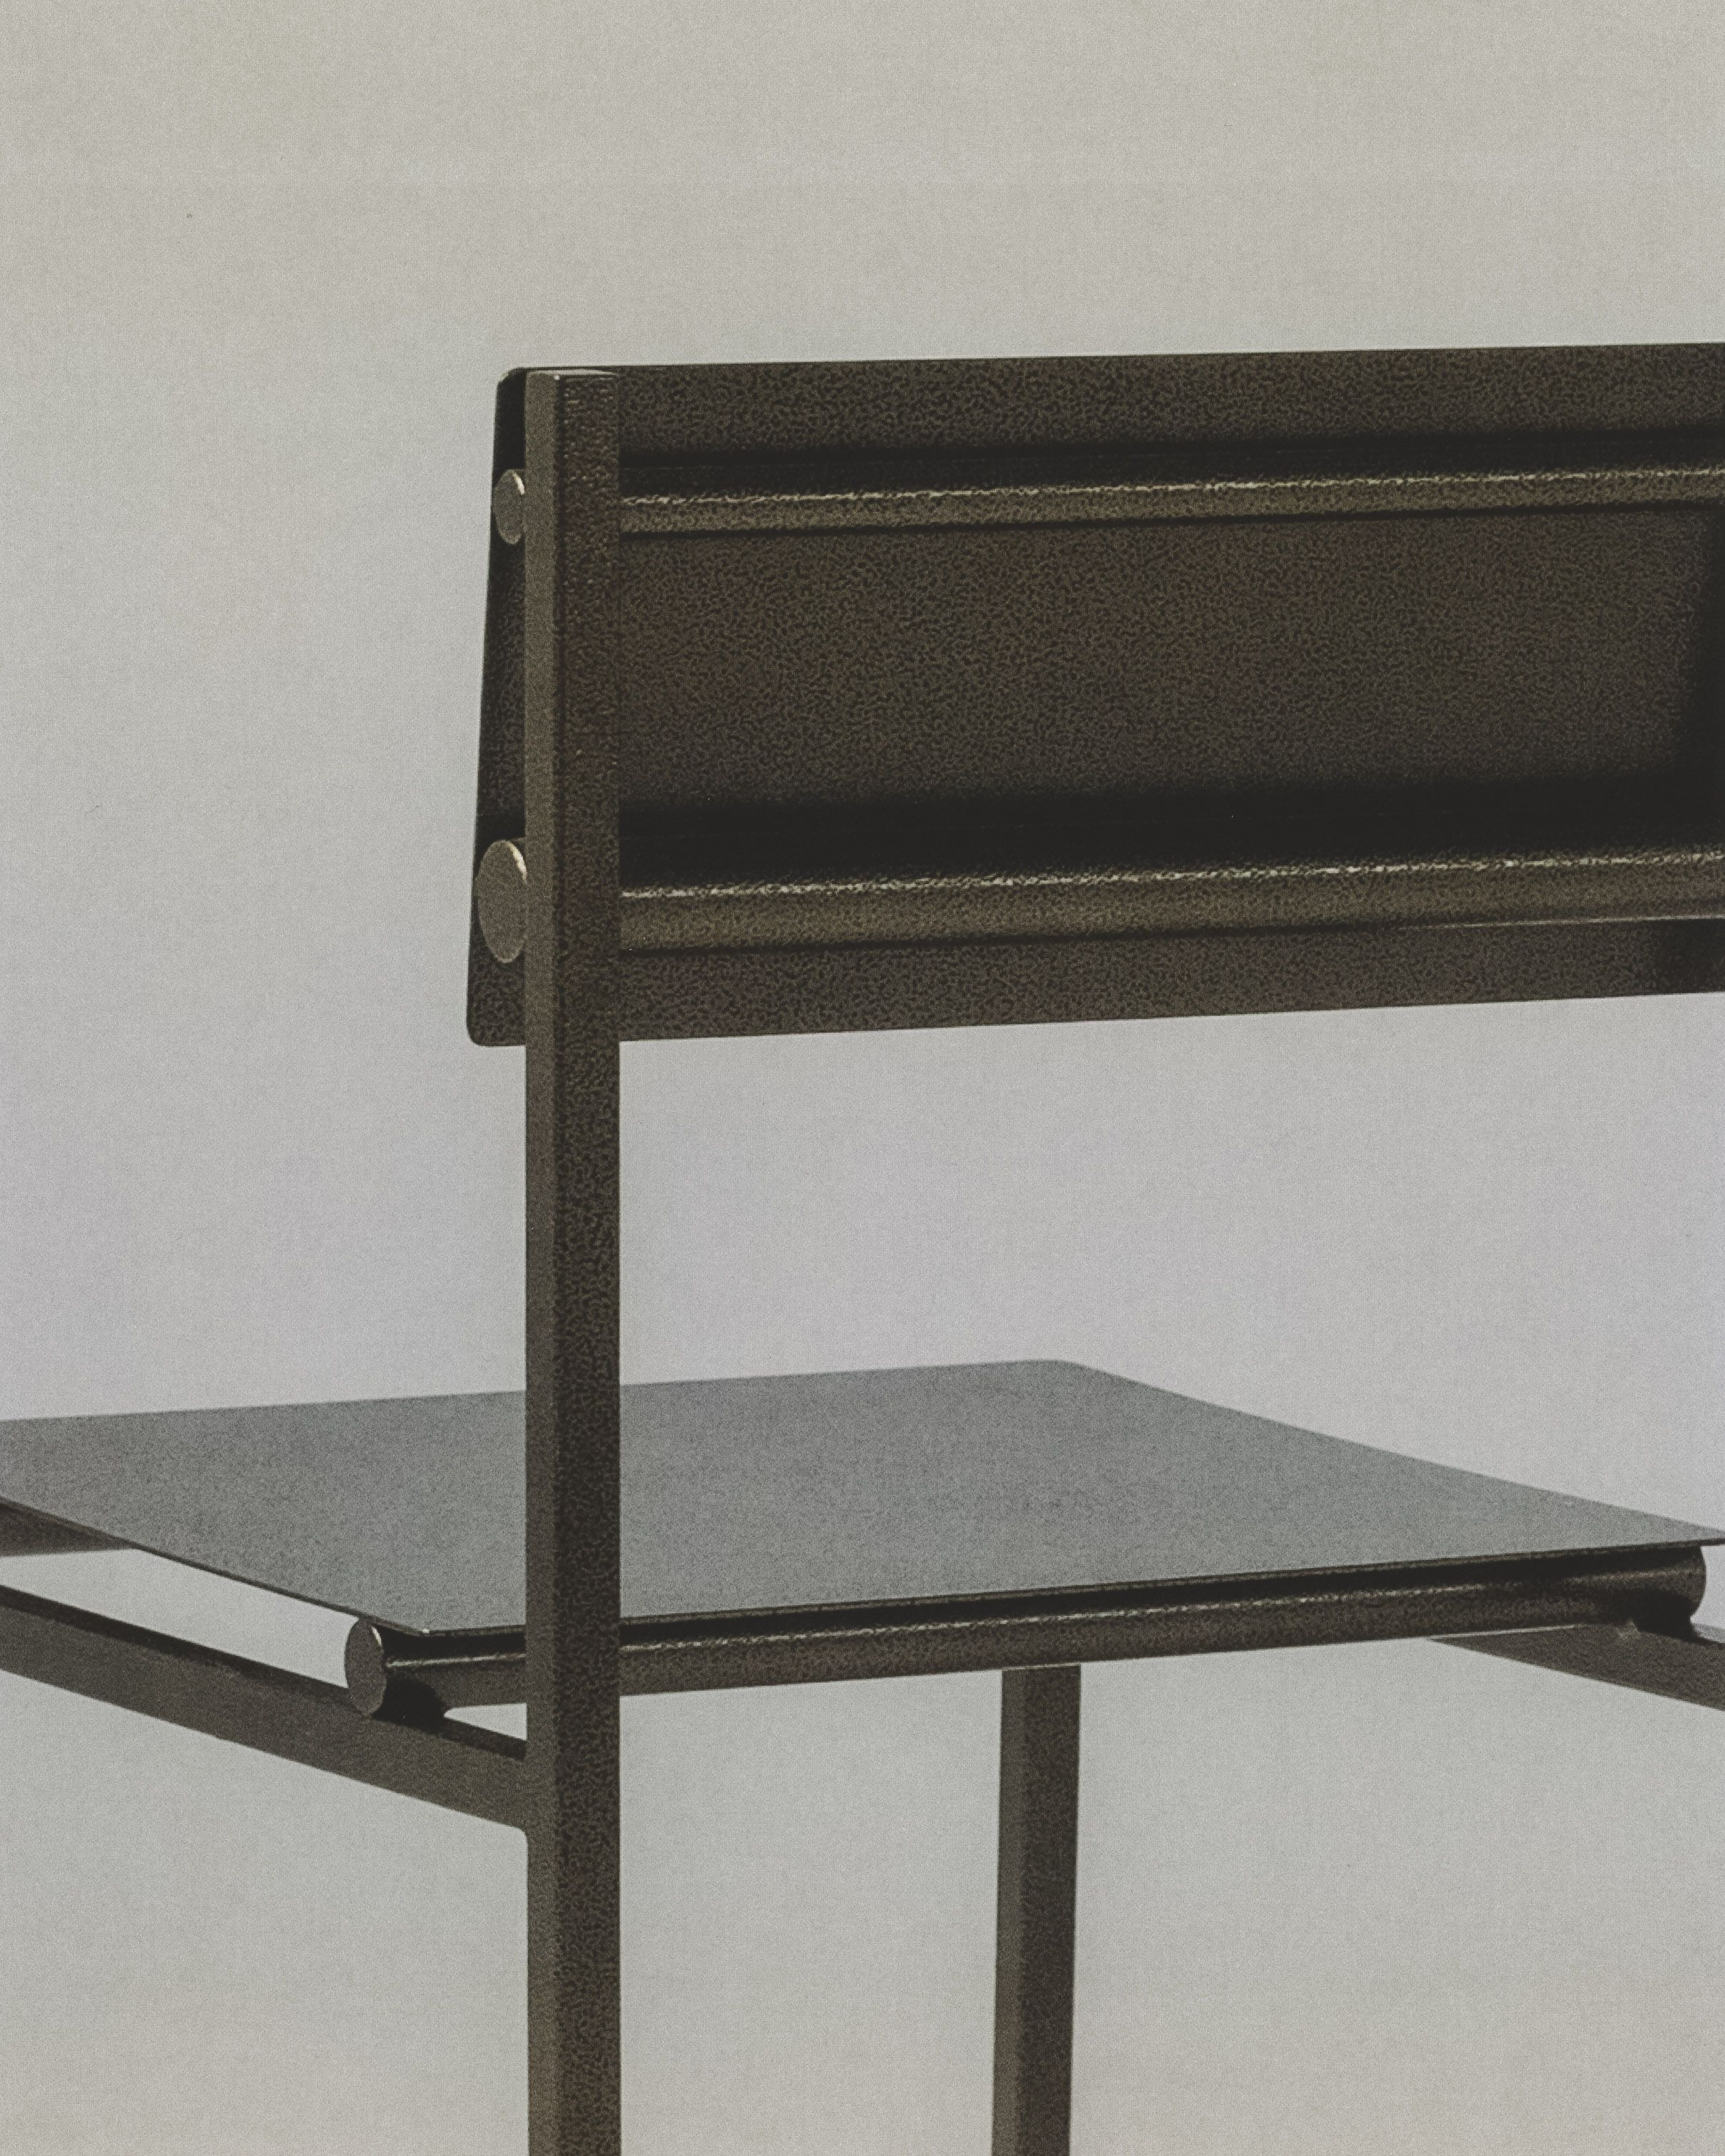 Suspension Metal Dining product image 2